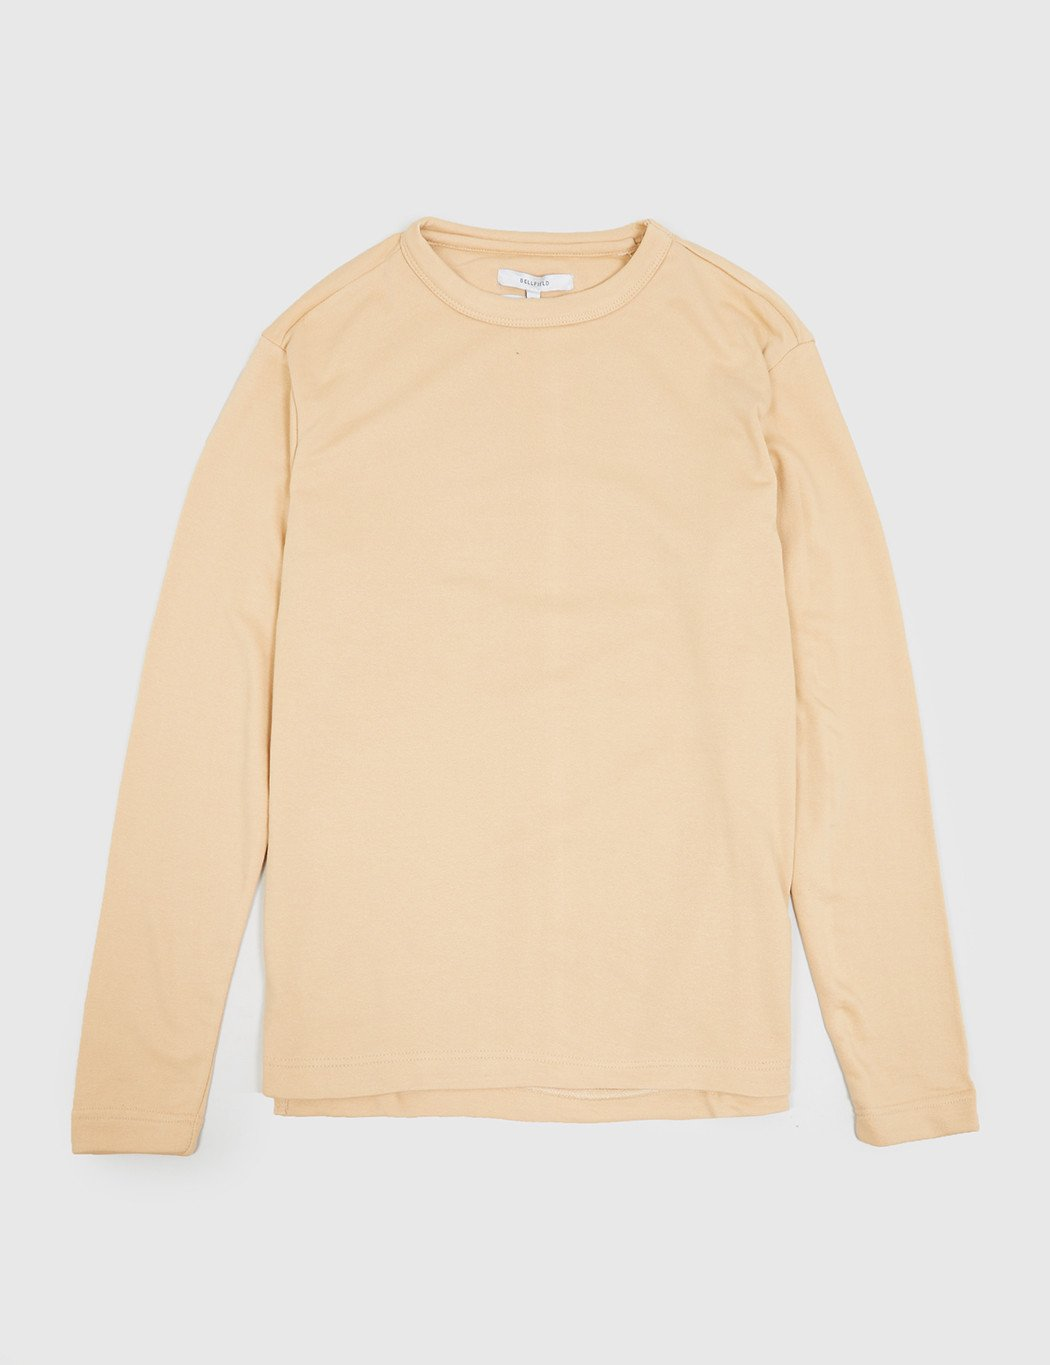 Bellfield Laird Sweatshirt - Orange